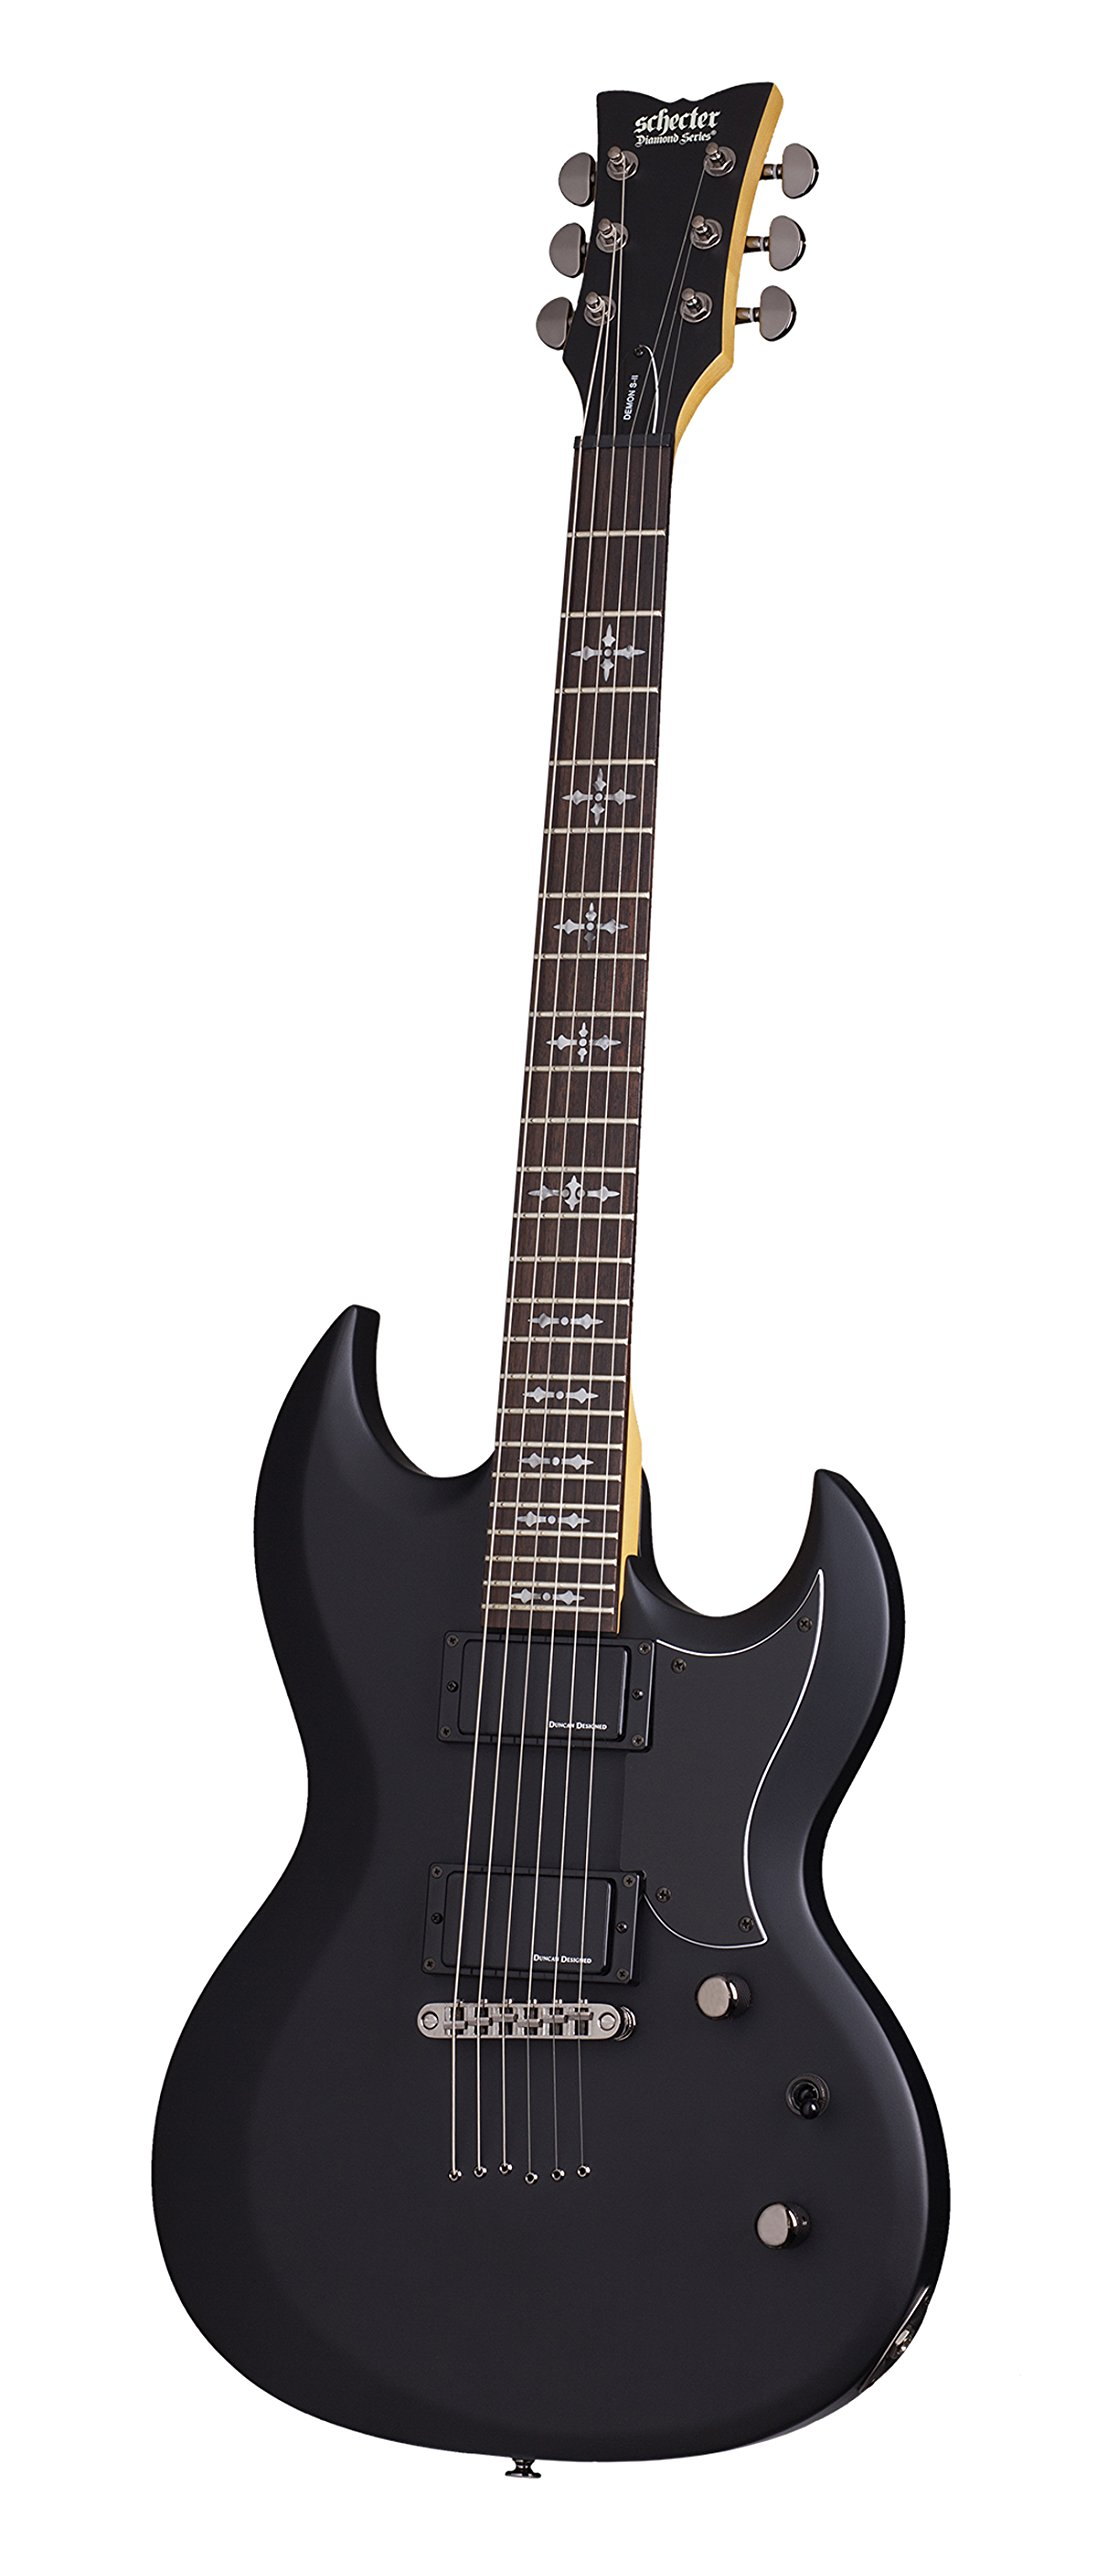 Cheap Schecter Demon S-II Solid-Body Electric Guitar SBK Black Friday & Cyber Monday 2019